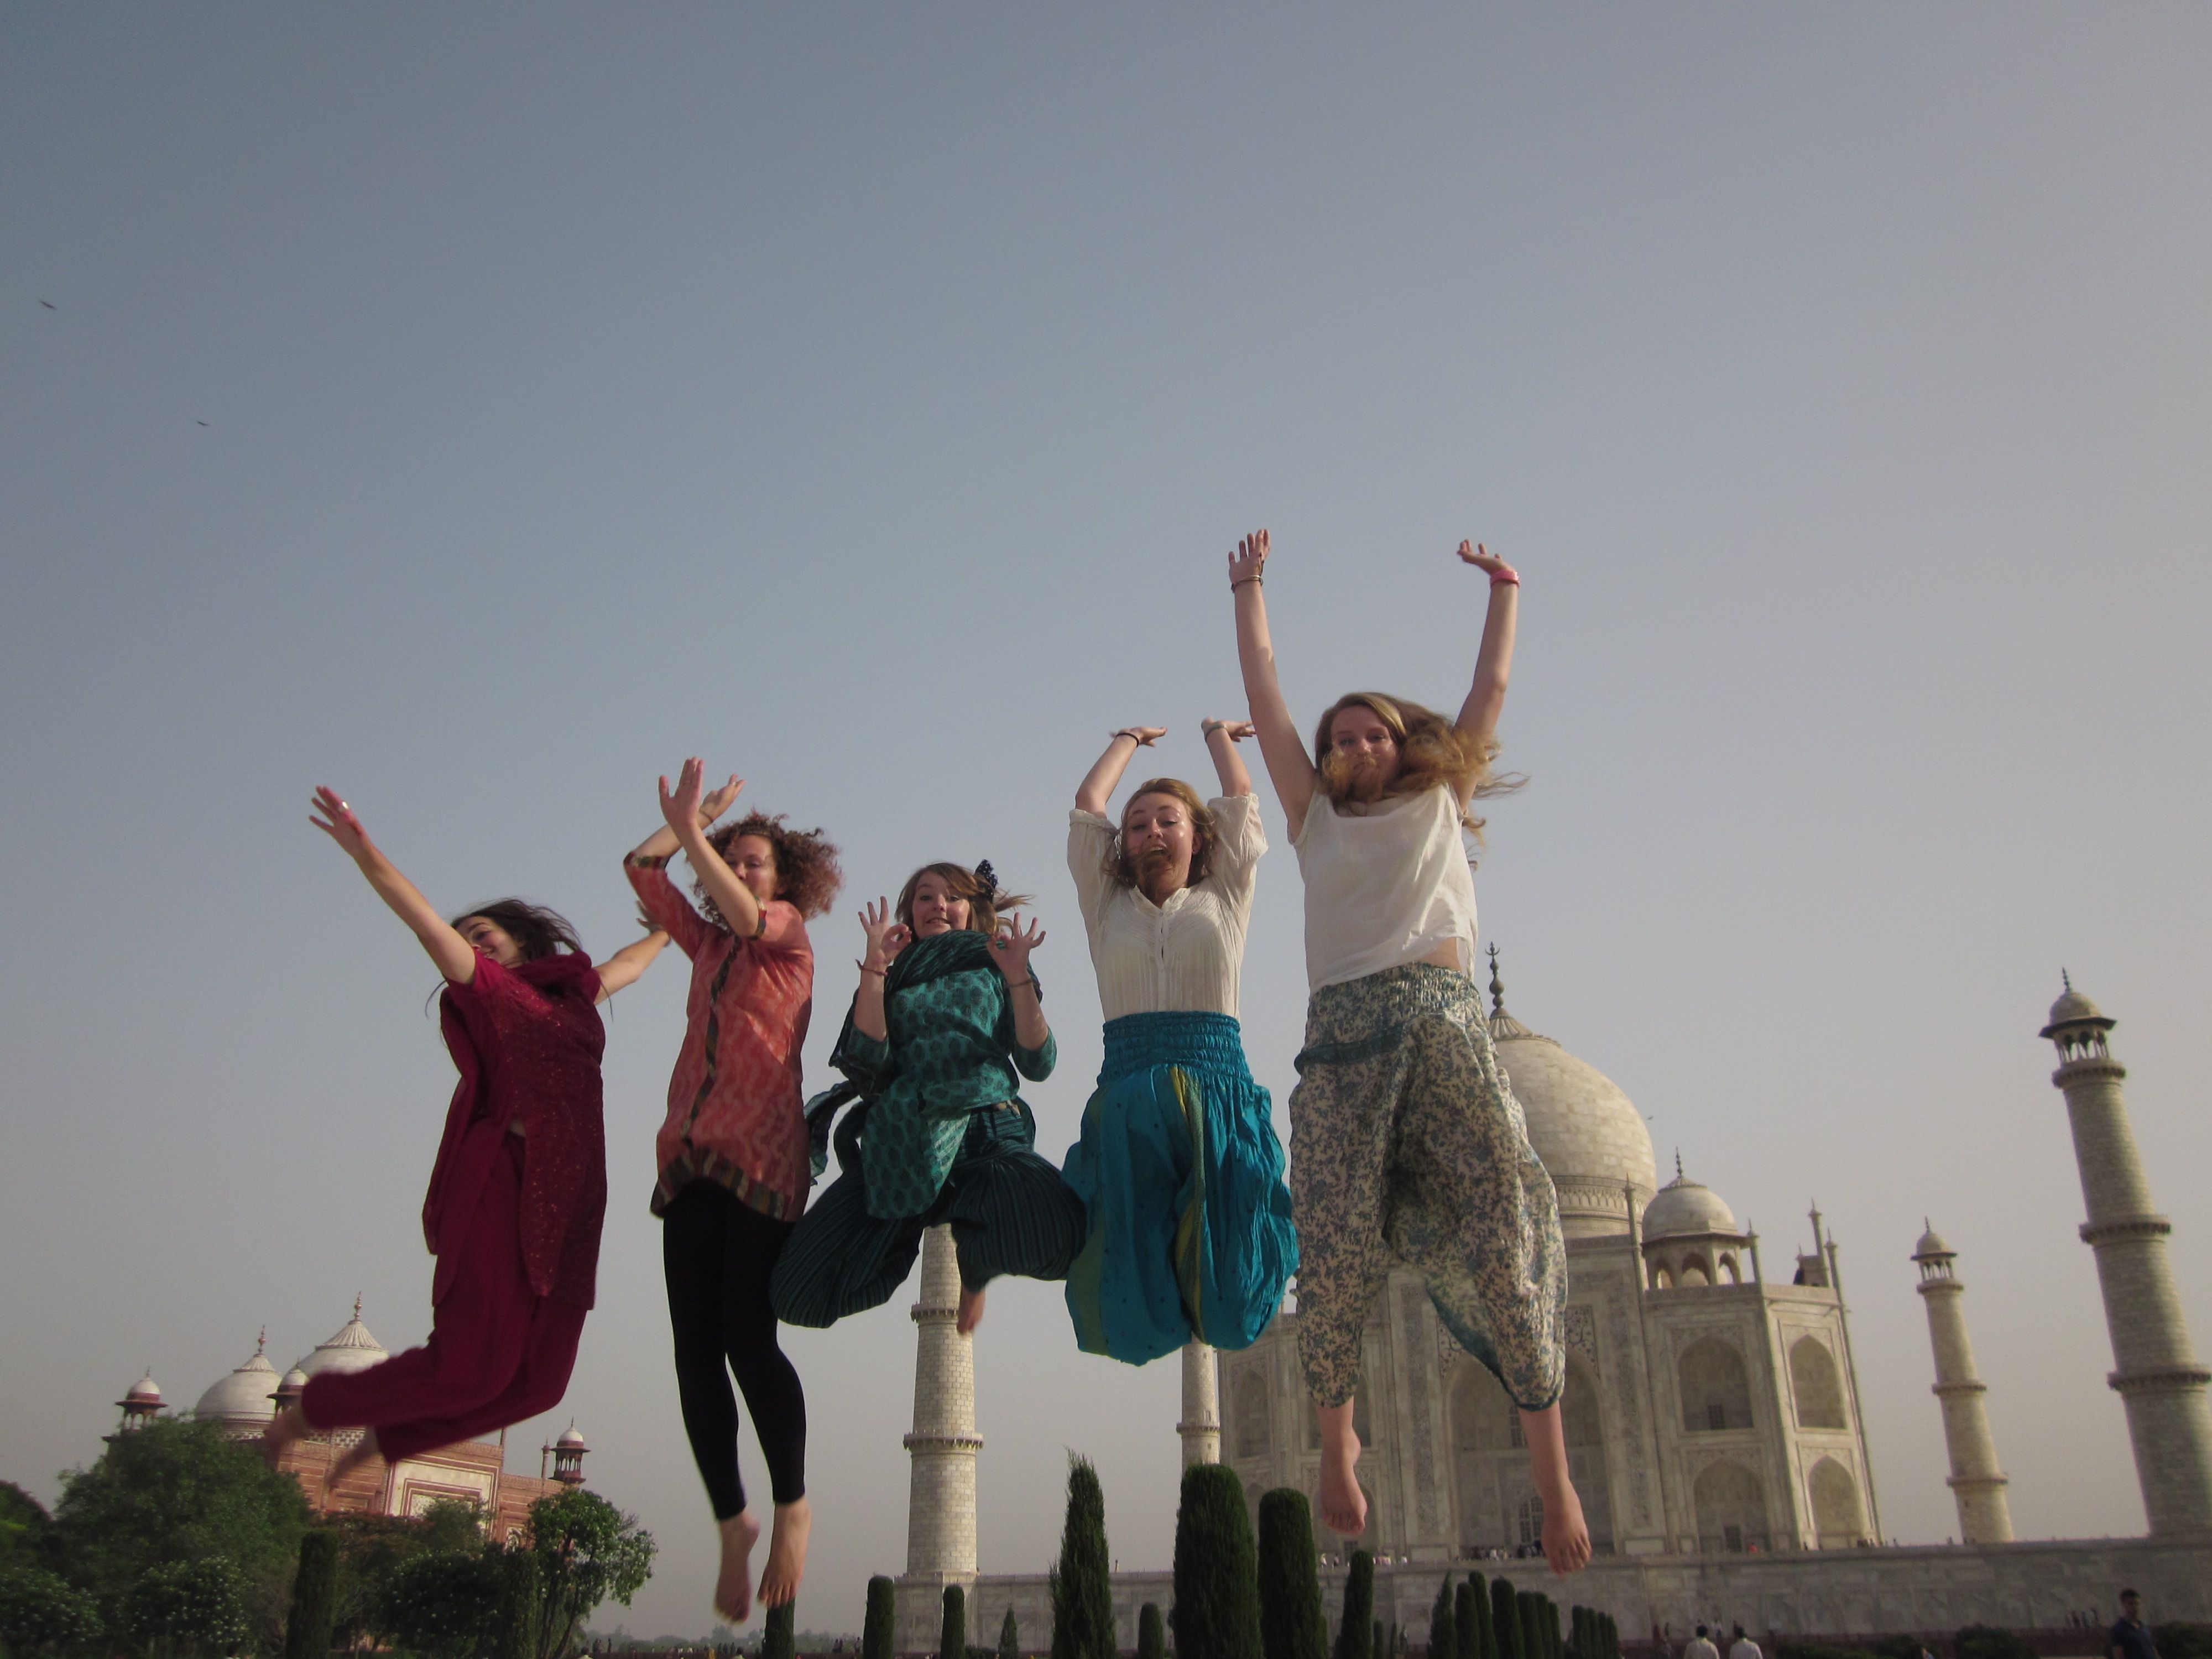 Go further and have an adventure in India on your Gap Year